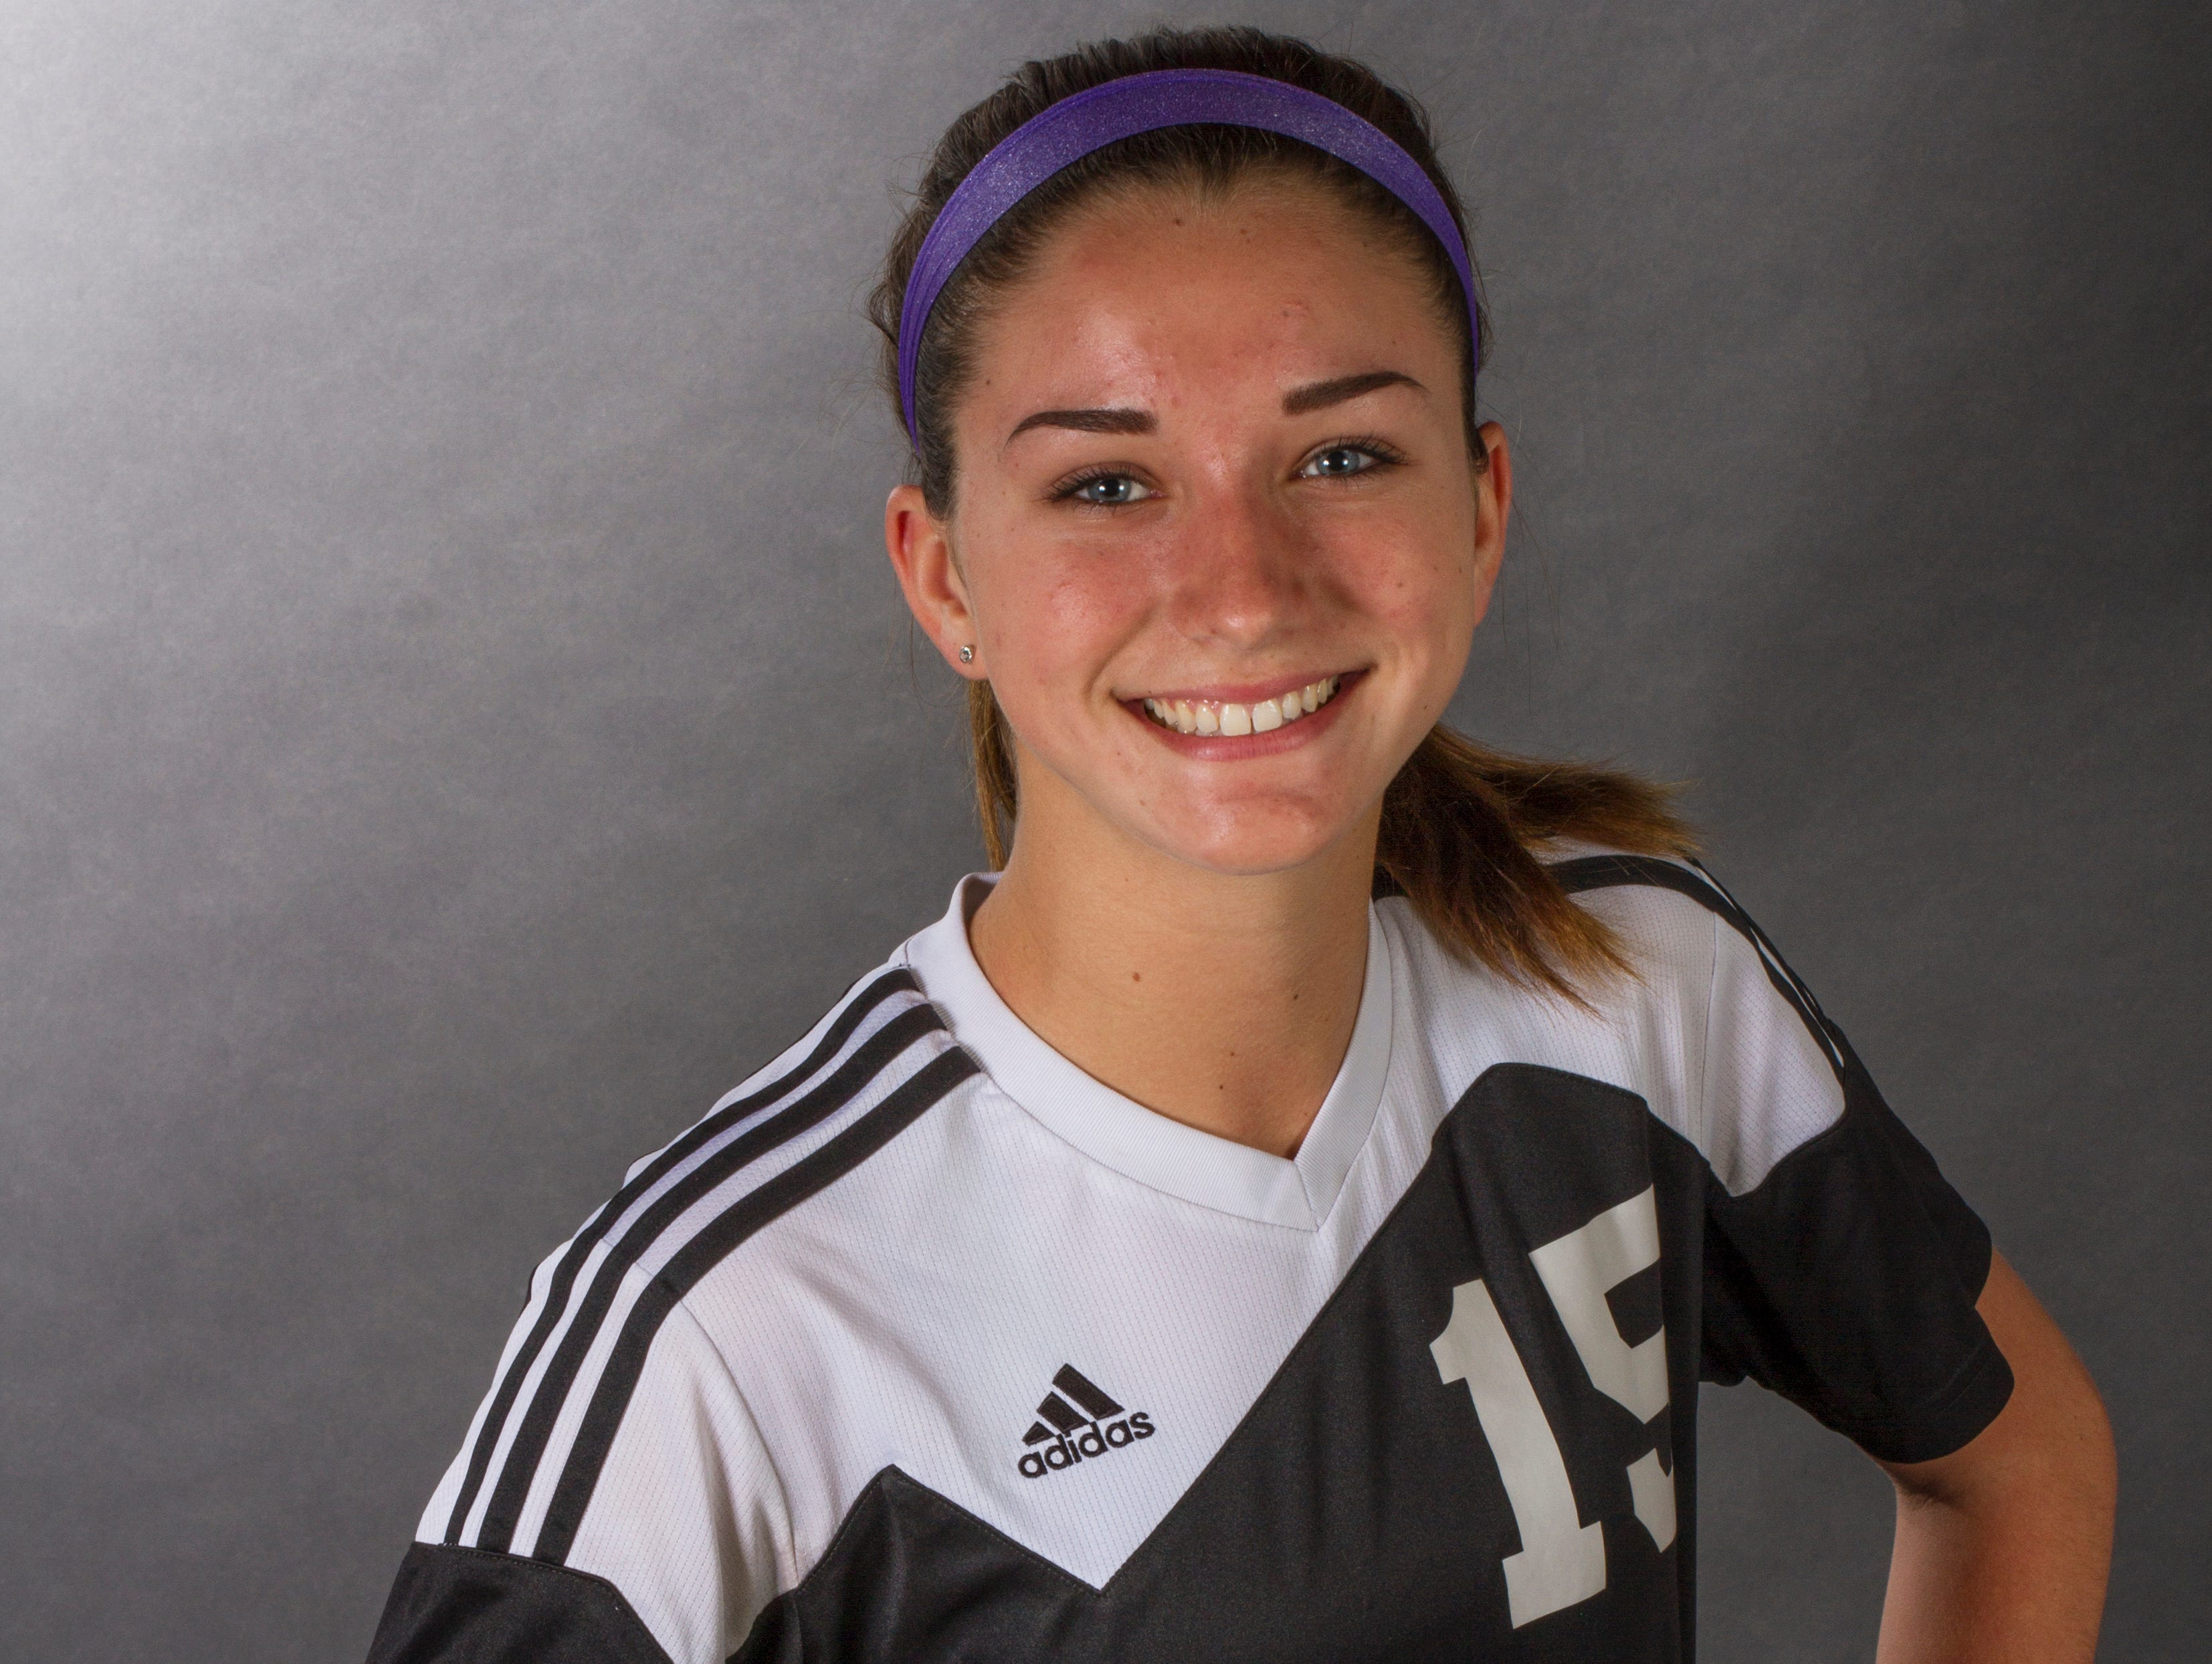 Taylor Yount, 15, is a freshman soccer player at Mariner High School.